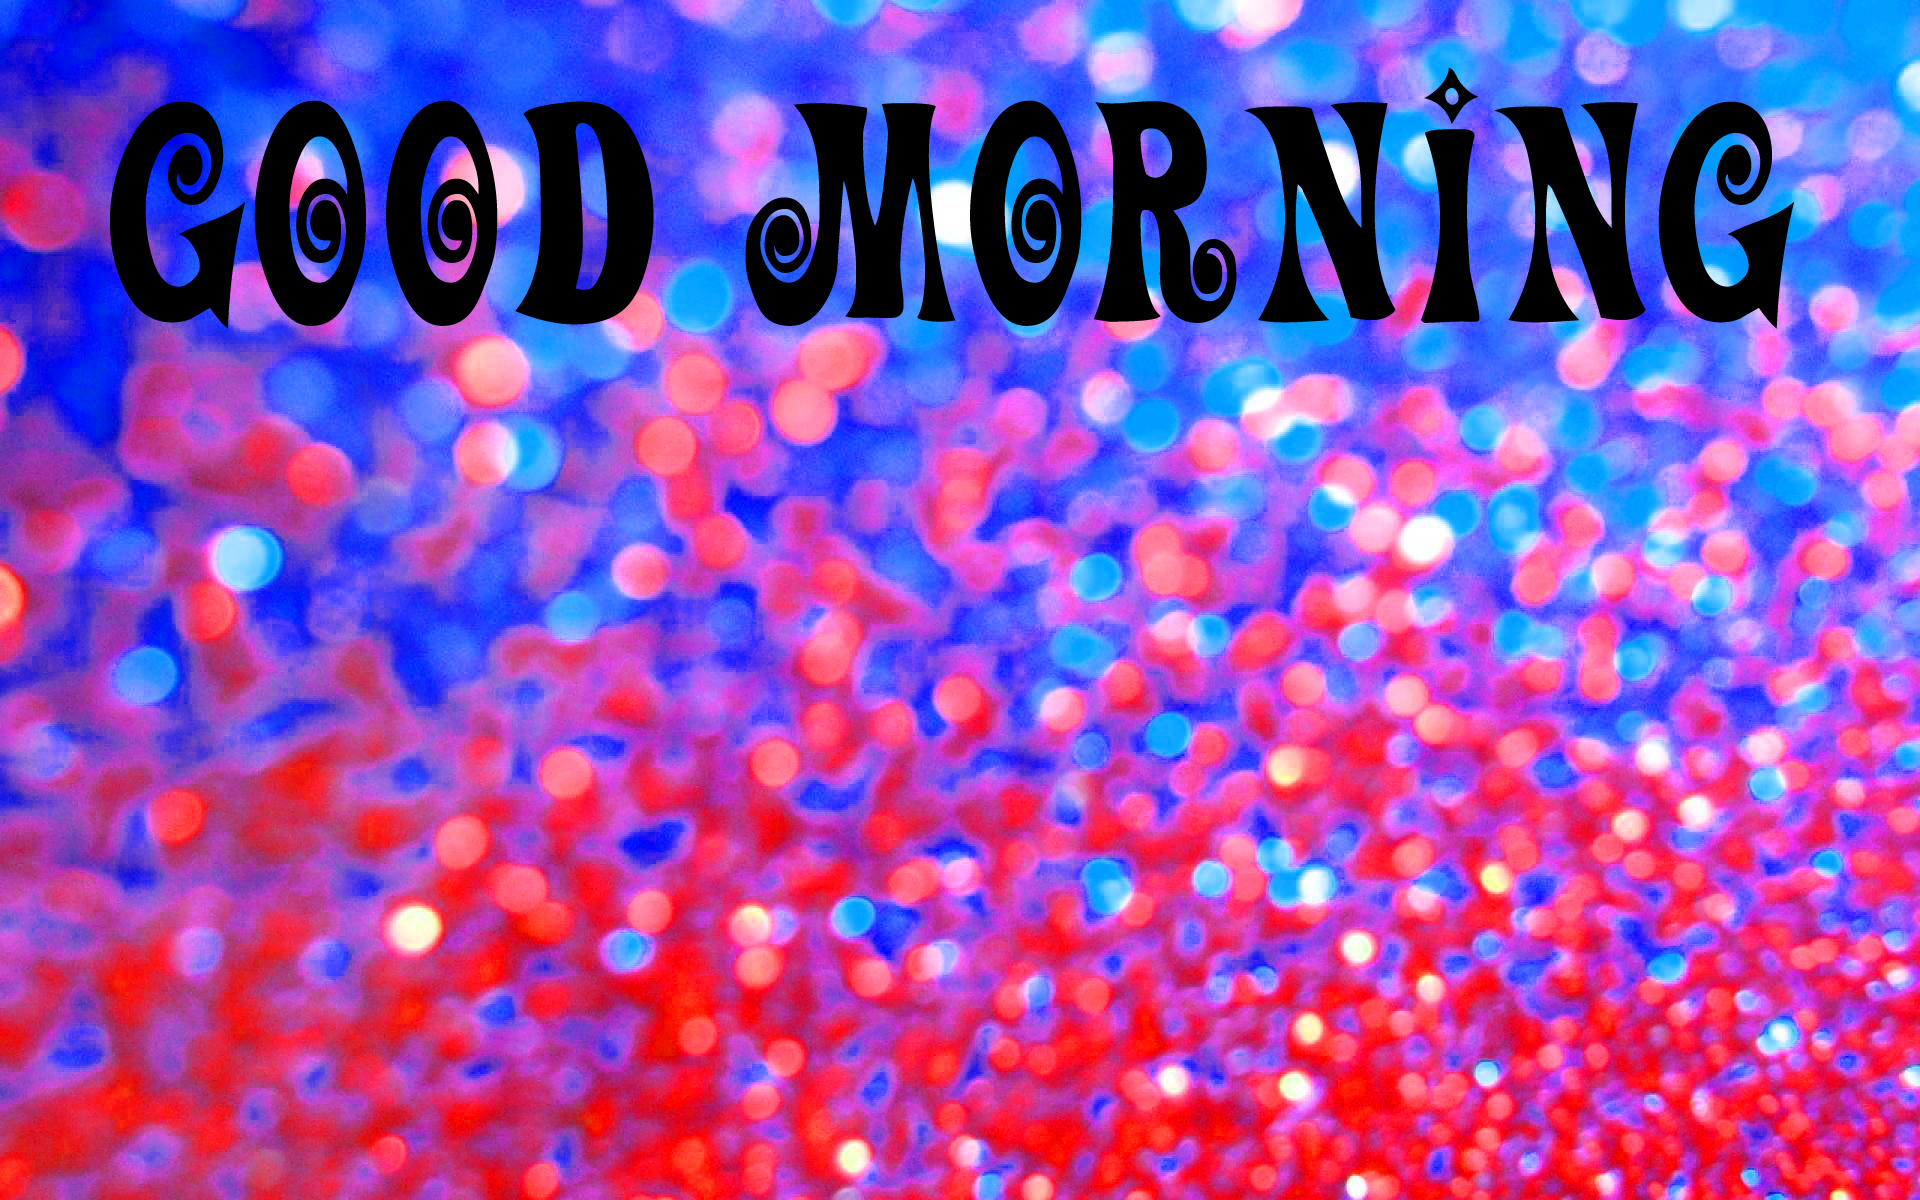 GOOD MORNING GLITTERS IMAGES WALLPAPER PICS DOWNLOAD